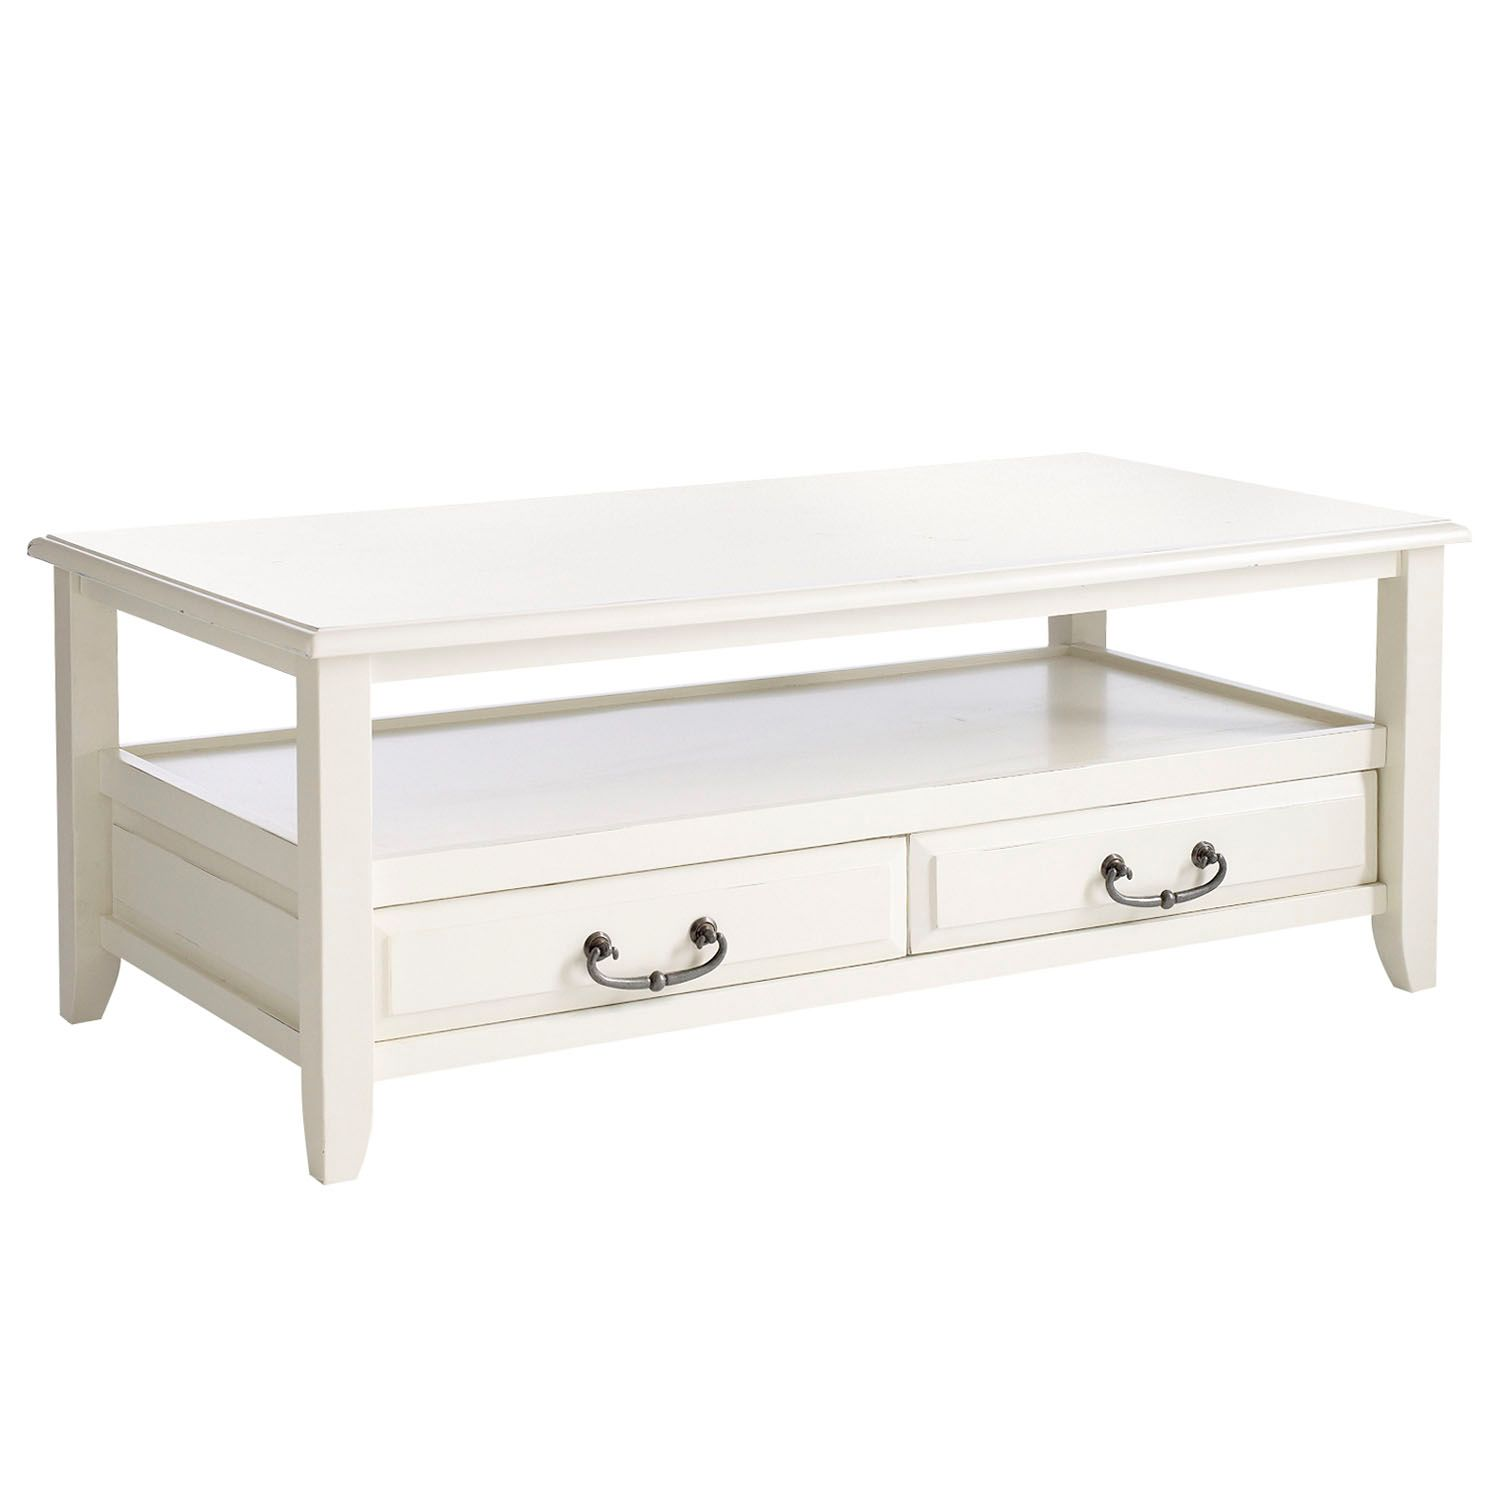 anywhere antique white coffee table with pull handles pier imports one accent metal patio tables marble side living room console garden storage units pottery barn benchwright